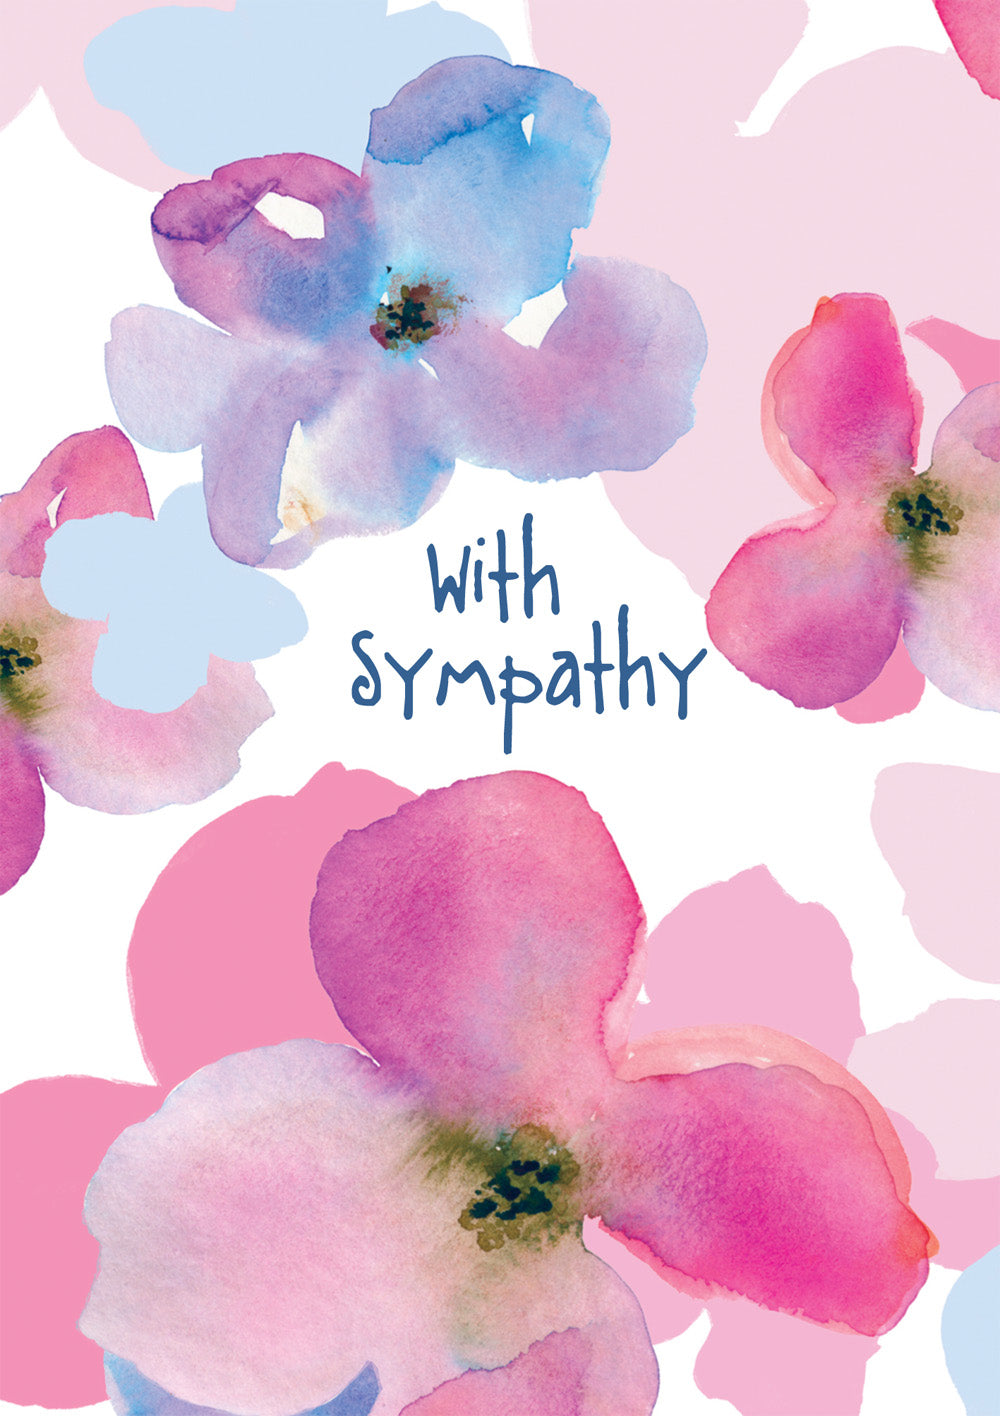 With Deepest Sympathy - Pink/Blue Flowers -  Standard Card  With Deepest Sympathy - Pink/Blue Flowers -  Standard Card